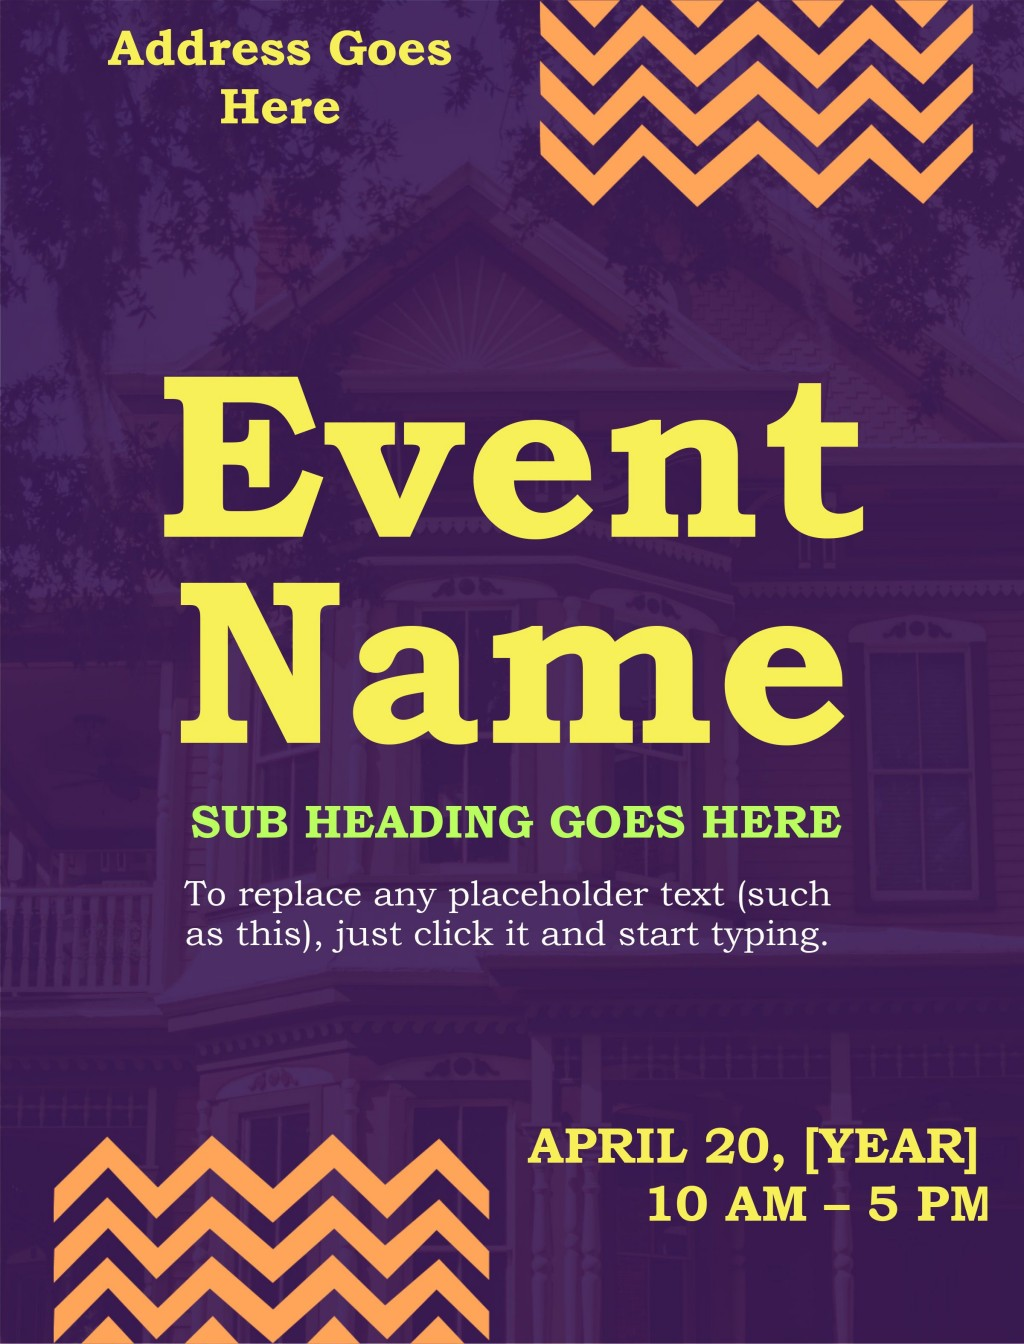 009 Shocking Event Flyer Template Free Printable Sample  ChurchLarge